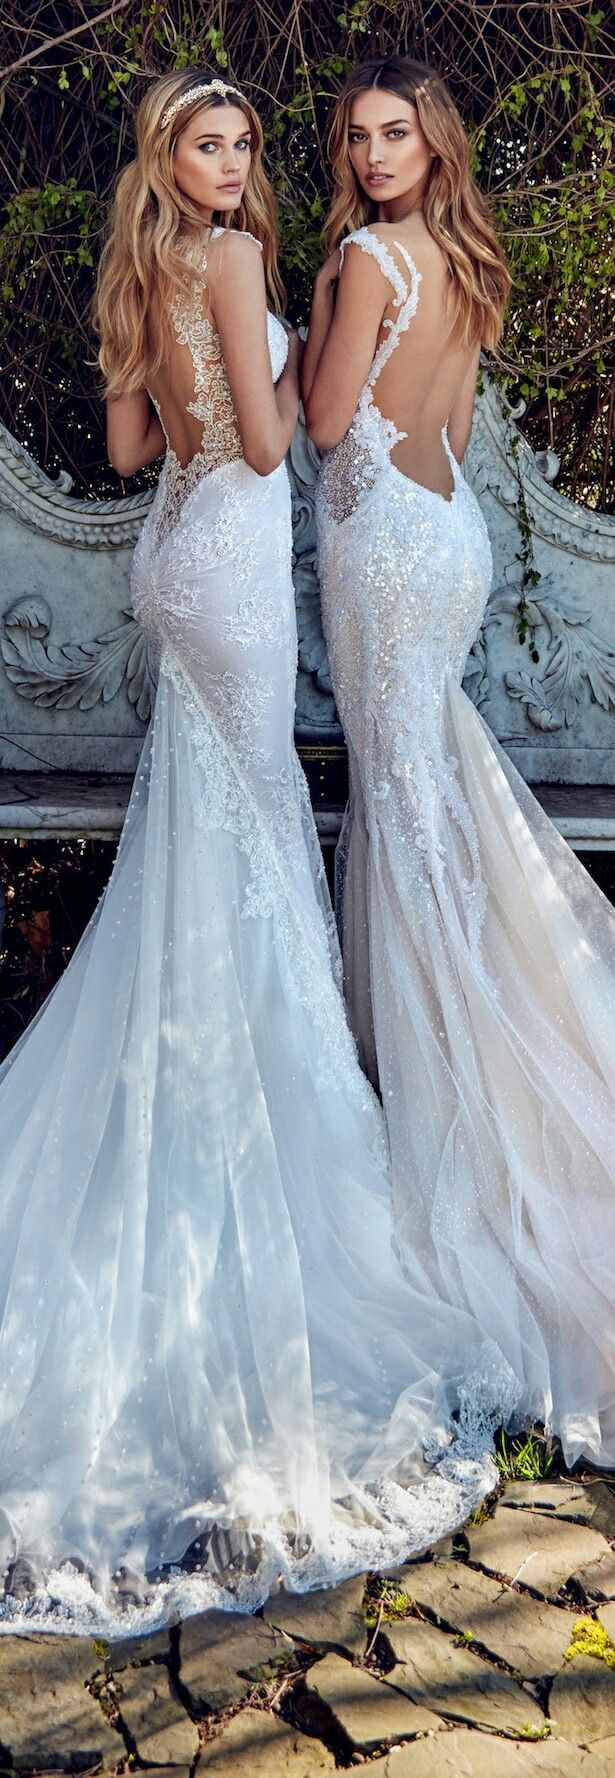 81 best bohemian gowns images on Pinterest | Short wedding gowns ...